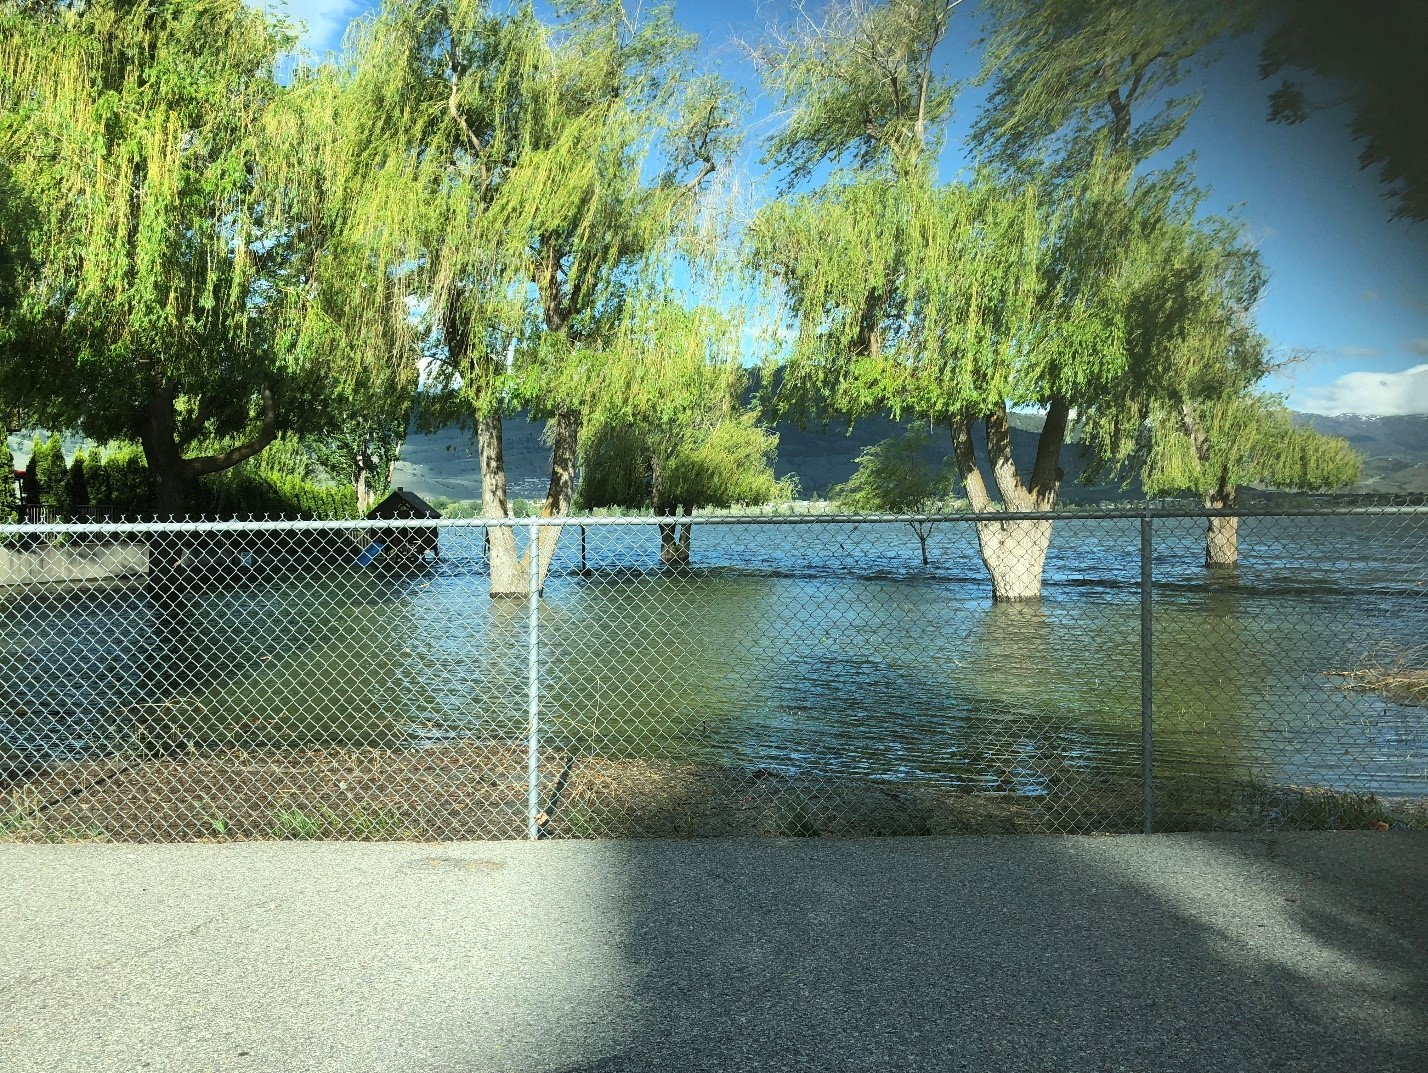 Trees in the town of Osoyoos, British Columbia, surrounded by floodwaters on May 15. Credit: Tamara Morgan